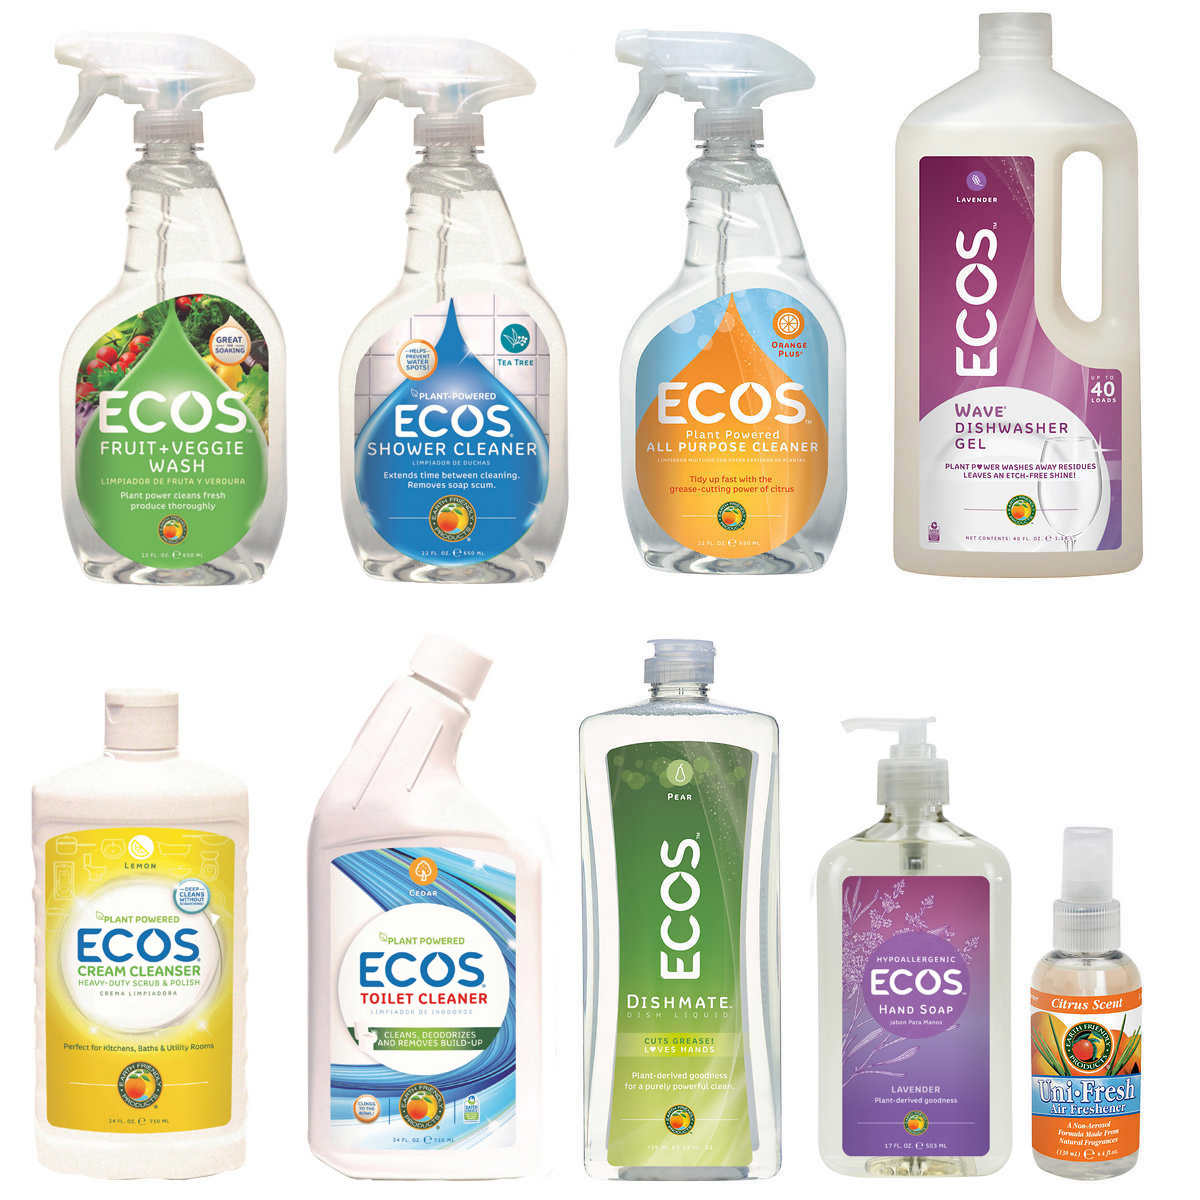 ECOS Earth Friendly Products Kitchen & Bath Cleaning Combo Pack